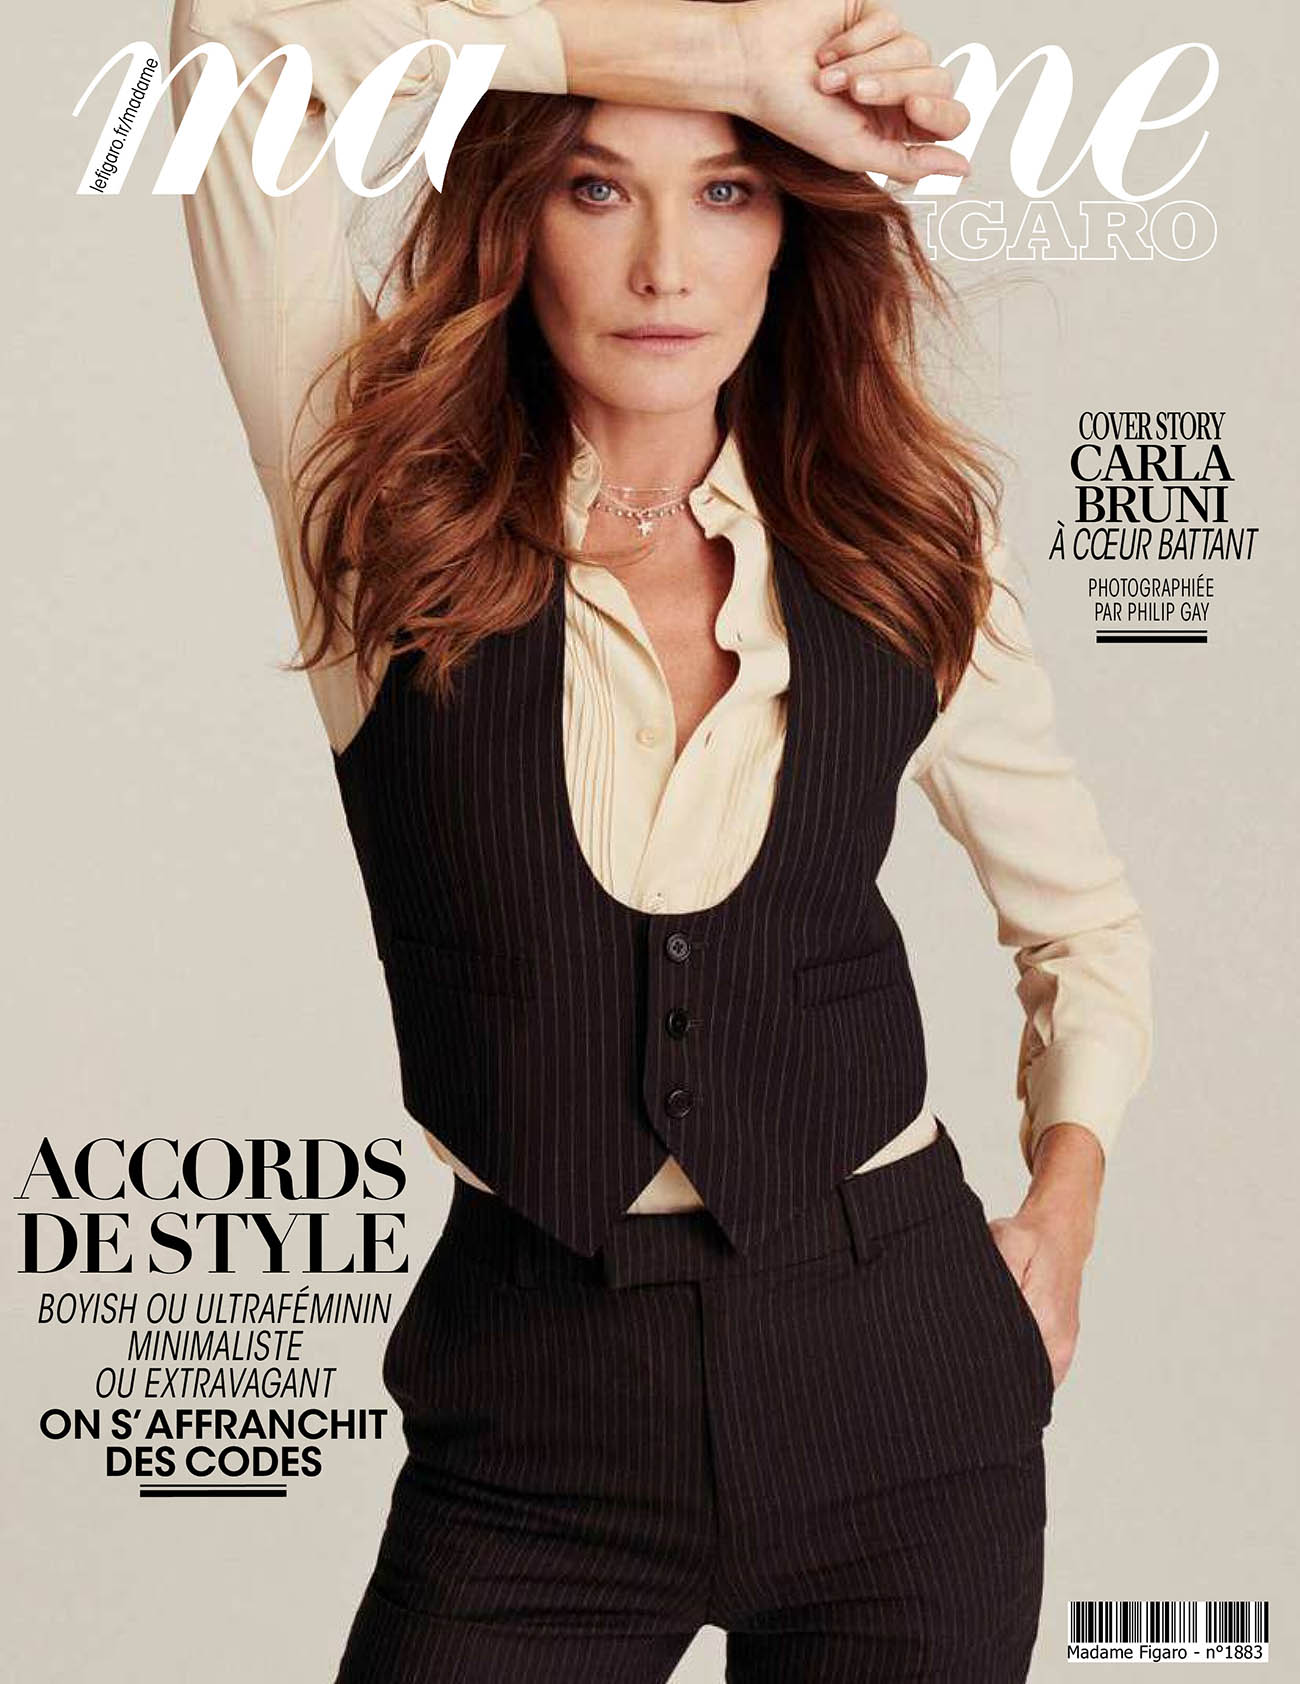 Carla Bruni covers Madame Figaro September 25th, 2020 by Philip Gay